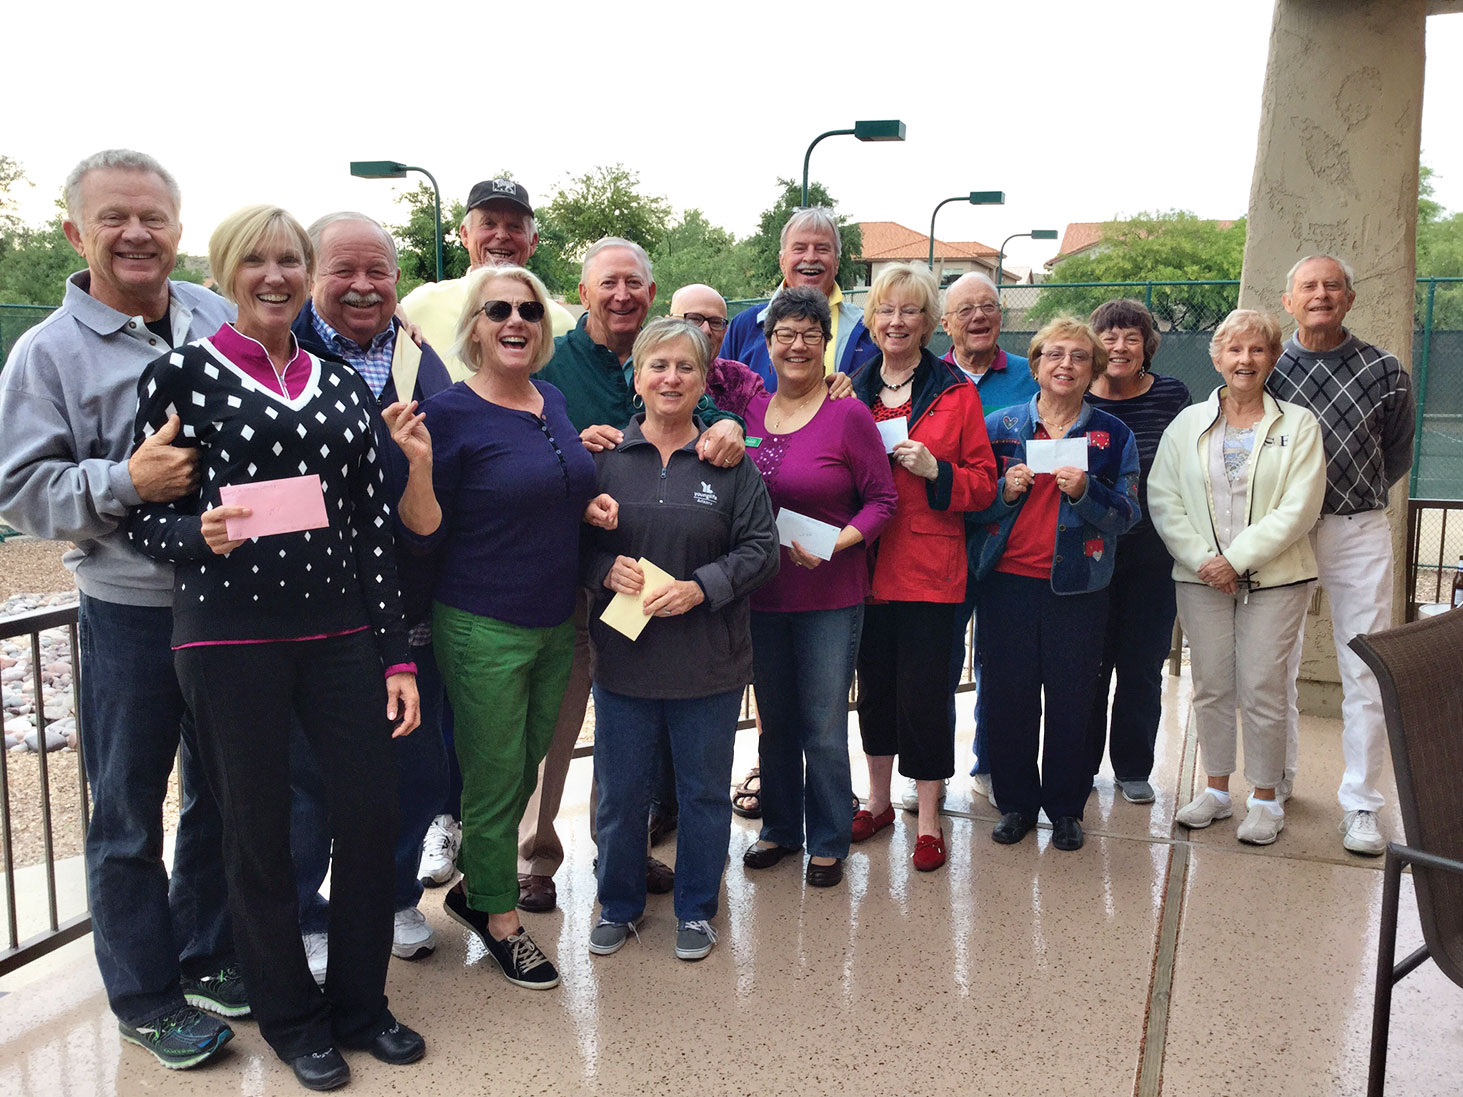 Left to right: First place Kay Kunze and Chuck Fries; second place Anja Voorman and John Hanna (standing in for Otto); Carter Wareing, Mardie/Chris Toney, Ruth/Dale Leman, Sandy/Bill Bryant, Norma/Don Kessler, Victoria Wareing and Geri/Paul Conser